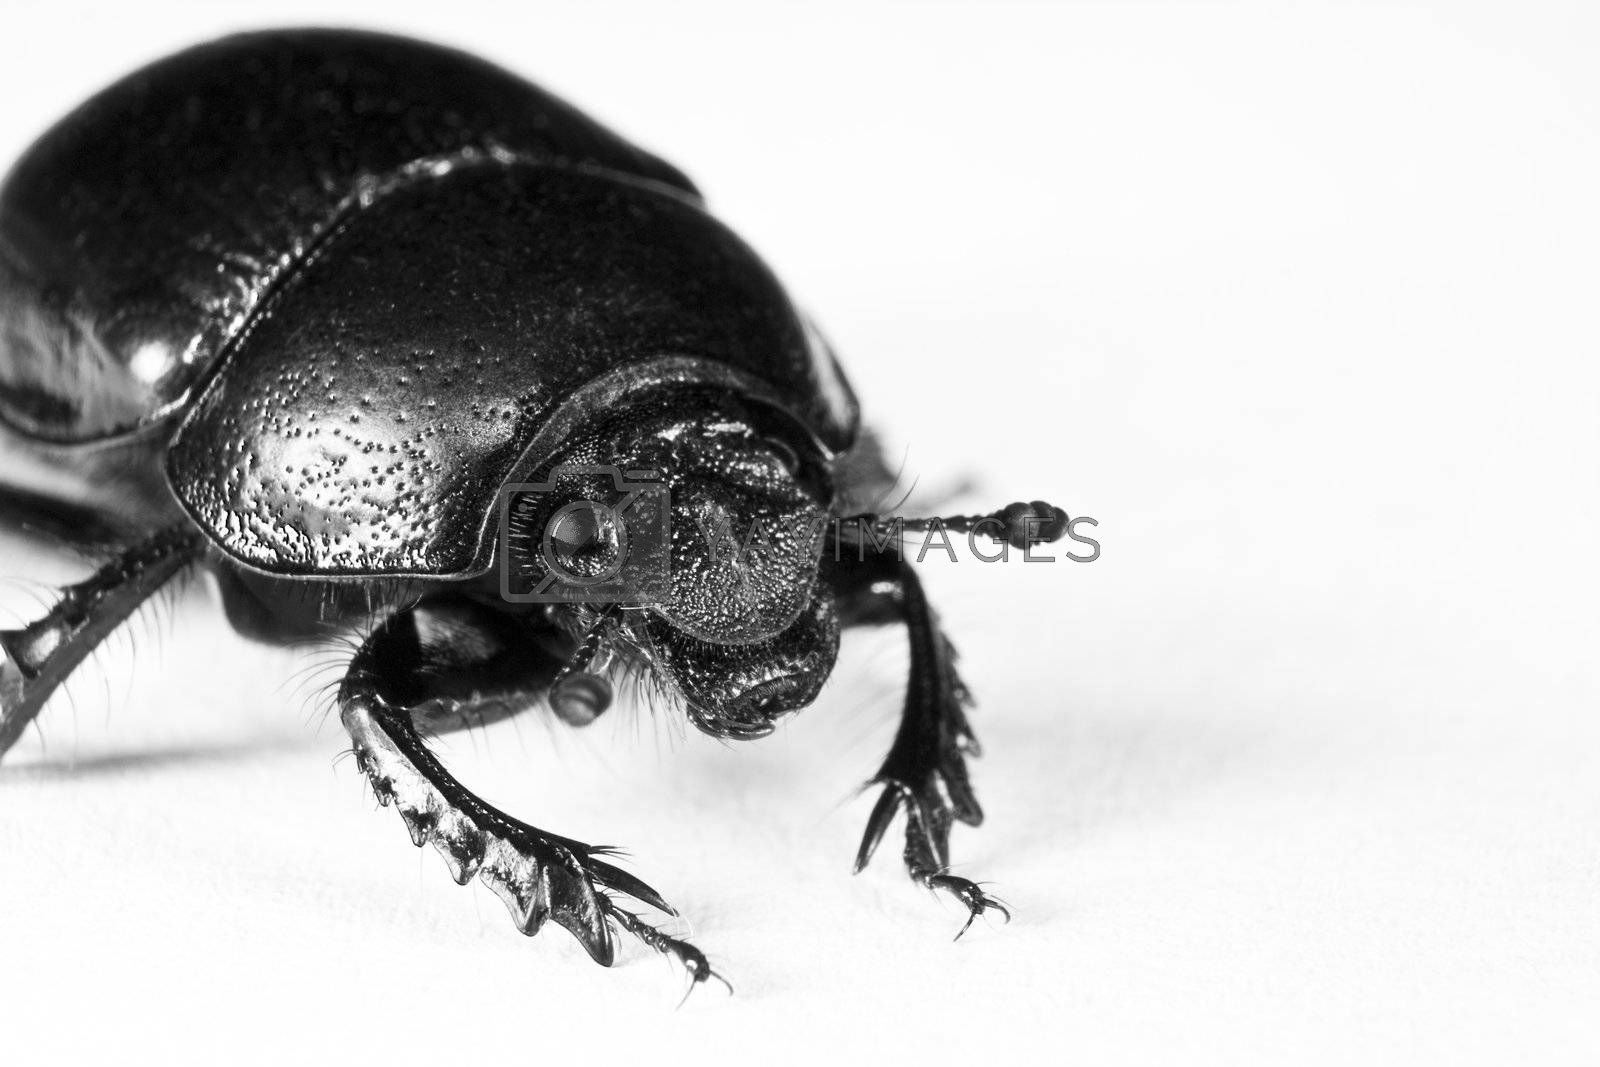 black bug in upper left corner on white background with nice antenna and impressive legs